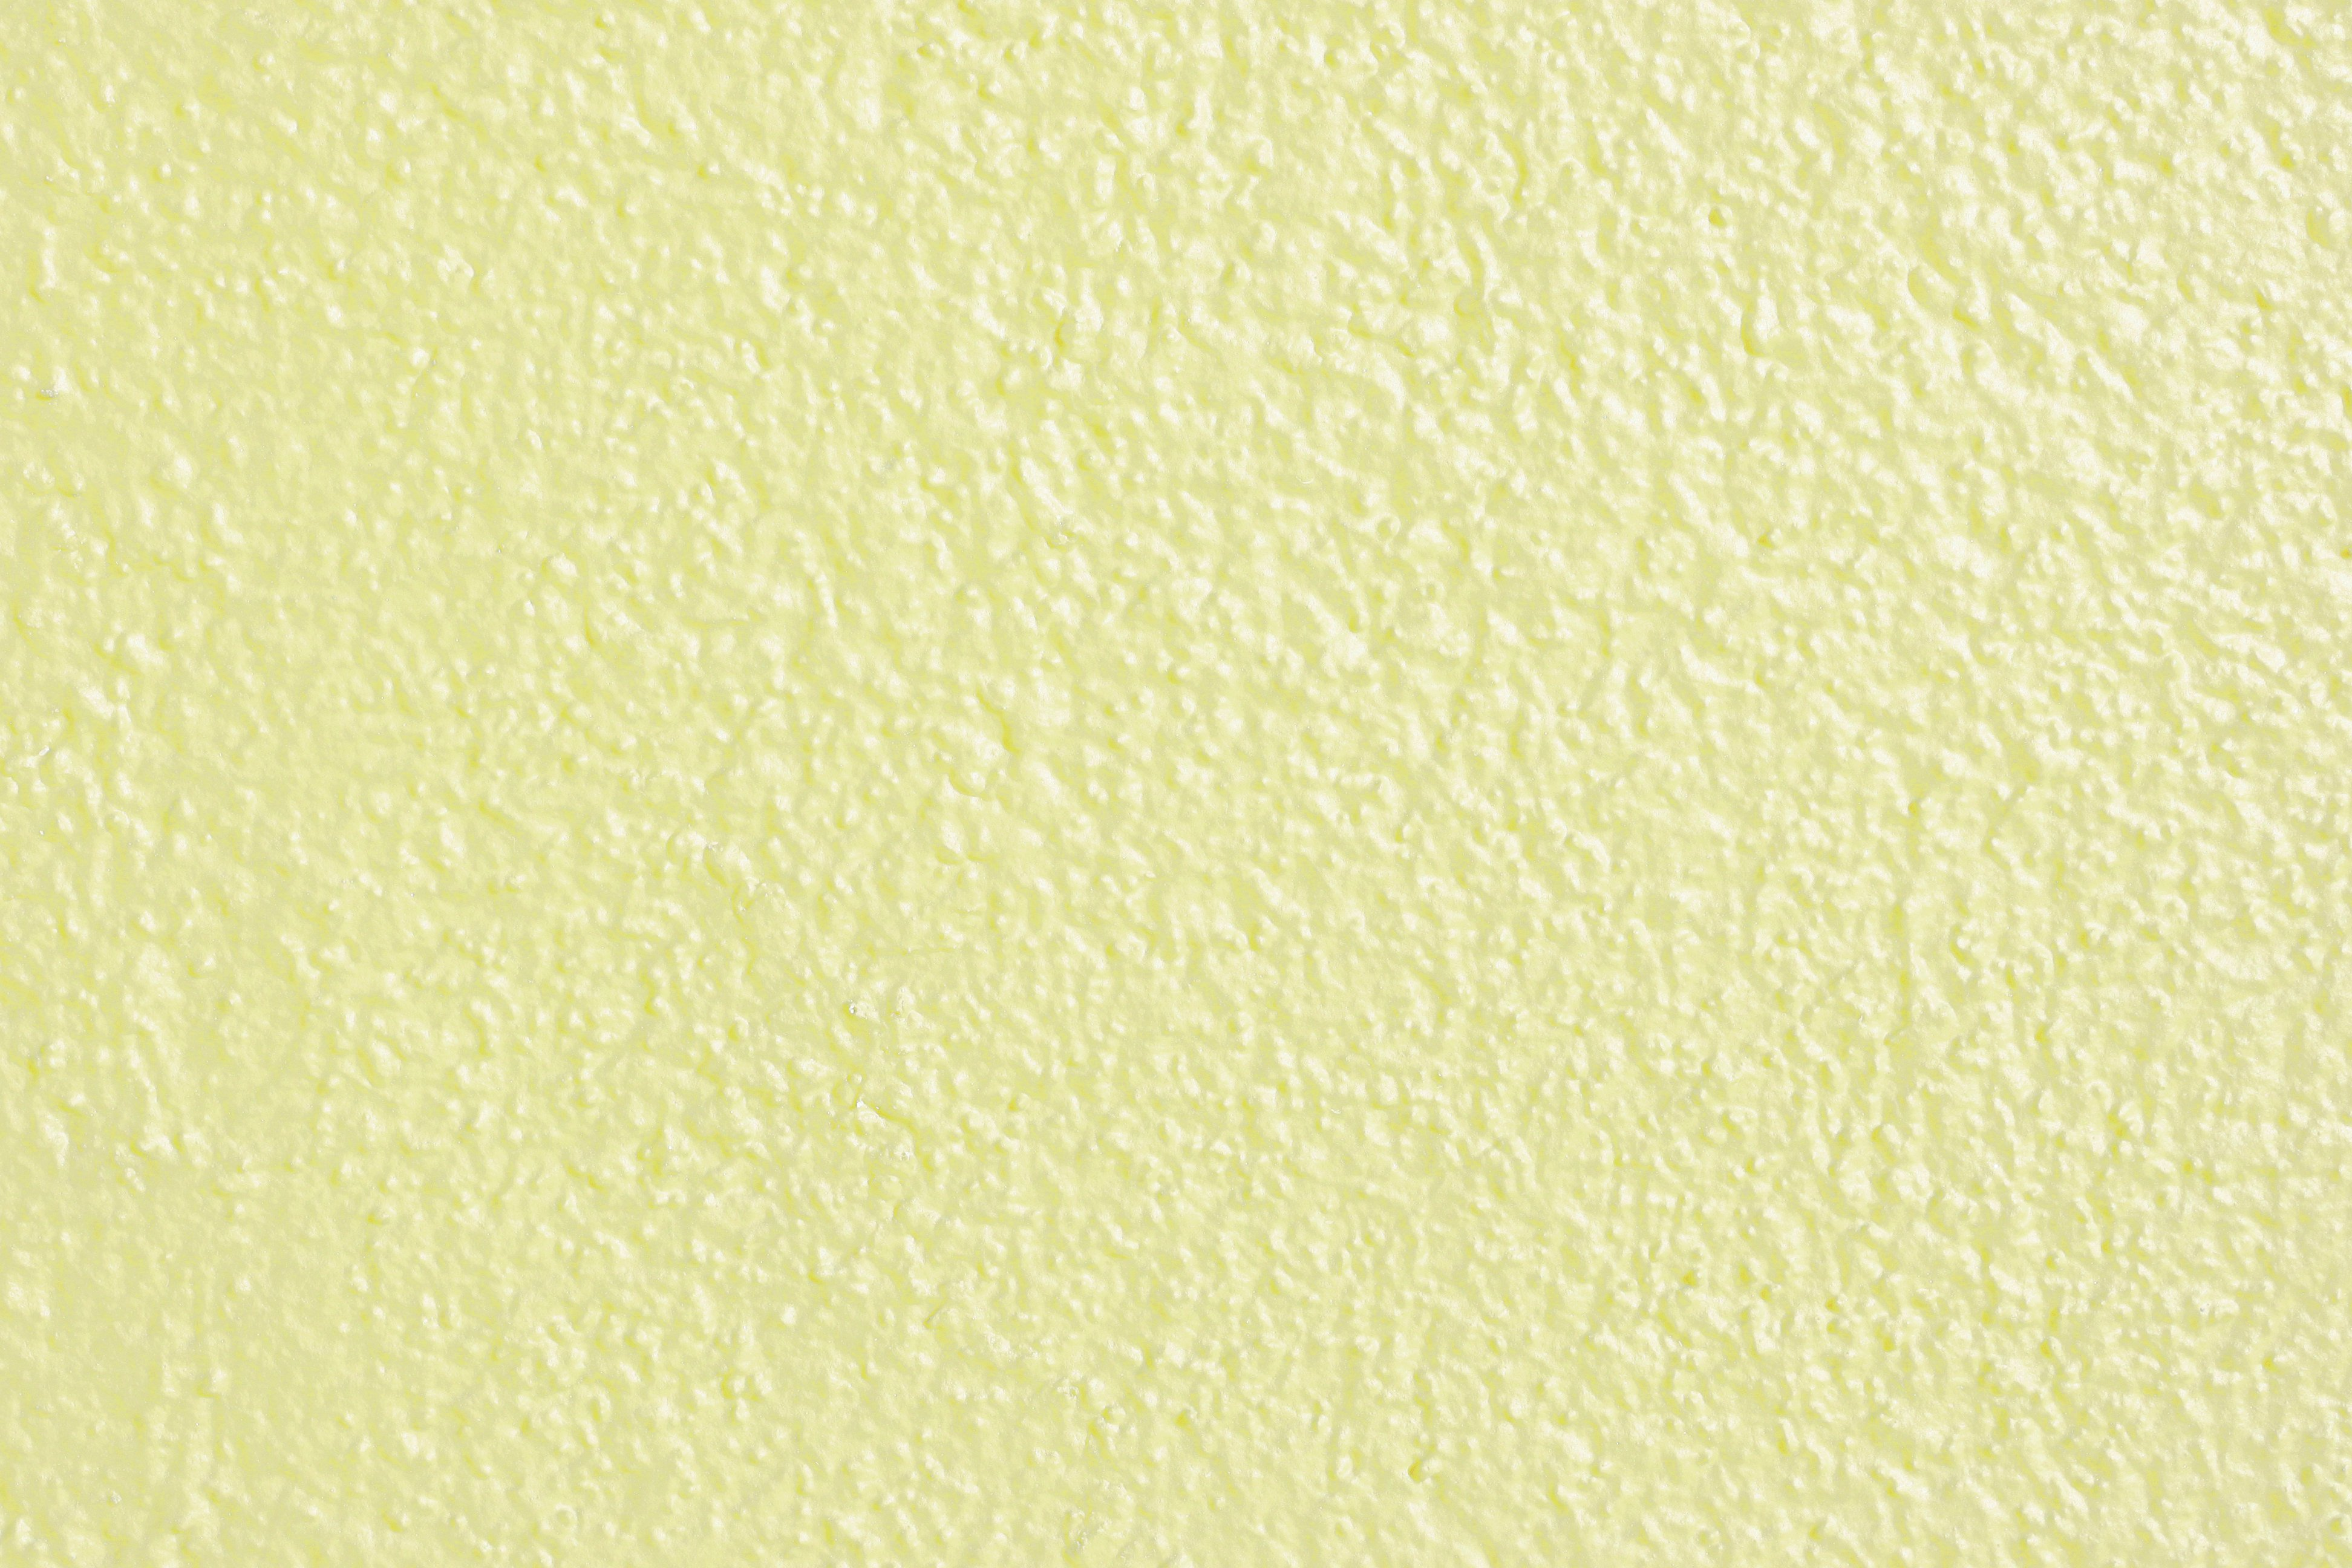 Pale Yellow Painted Wall Texture Picture Photograph Photos 3888x2592